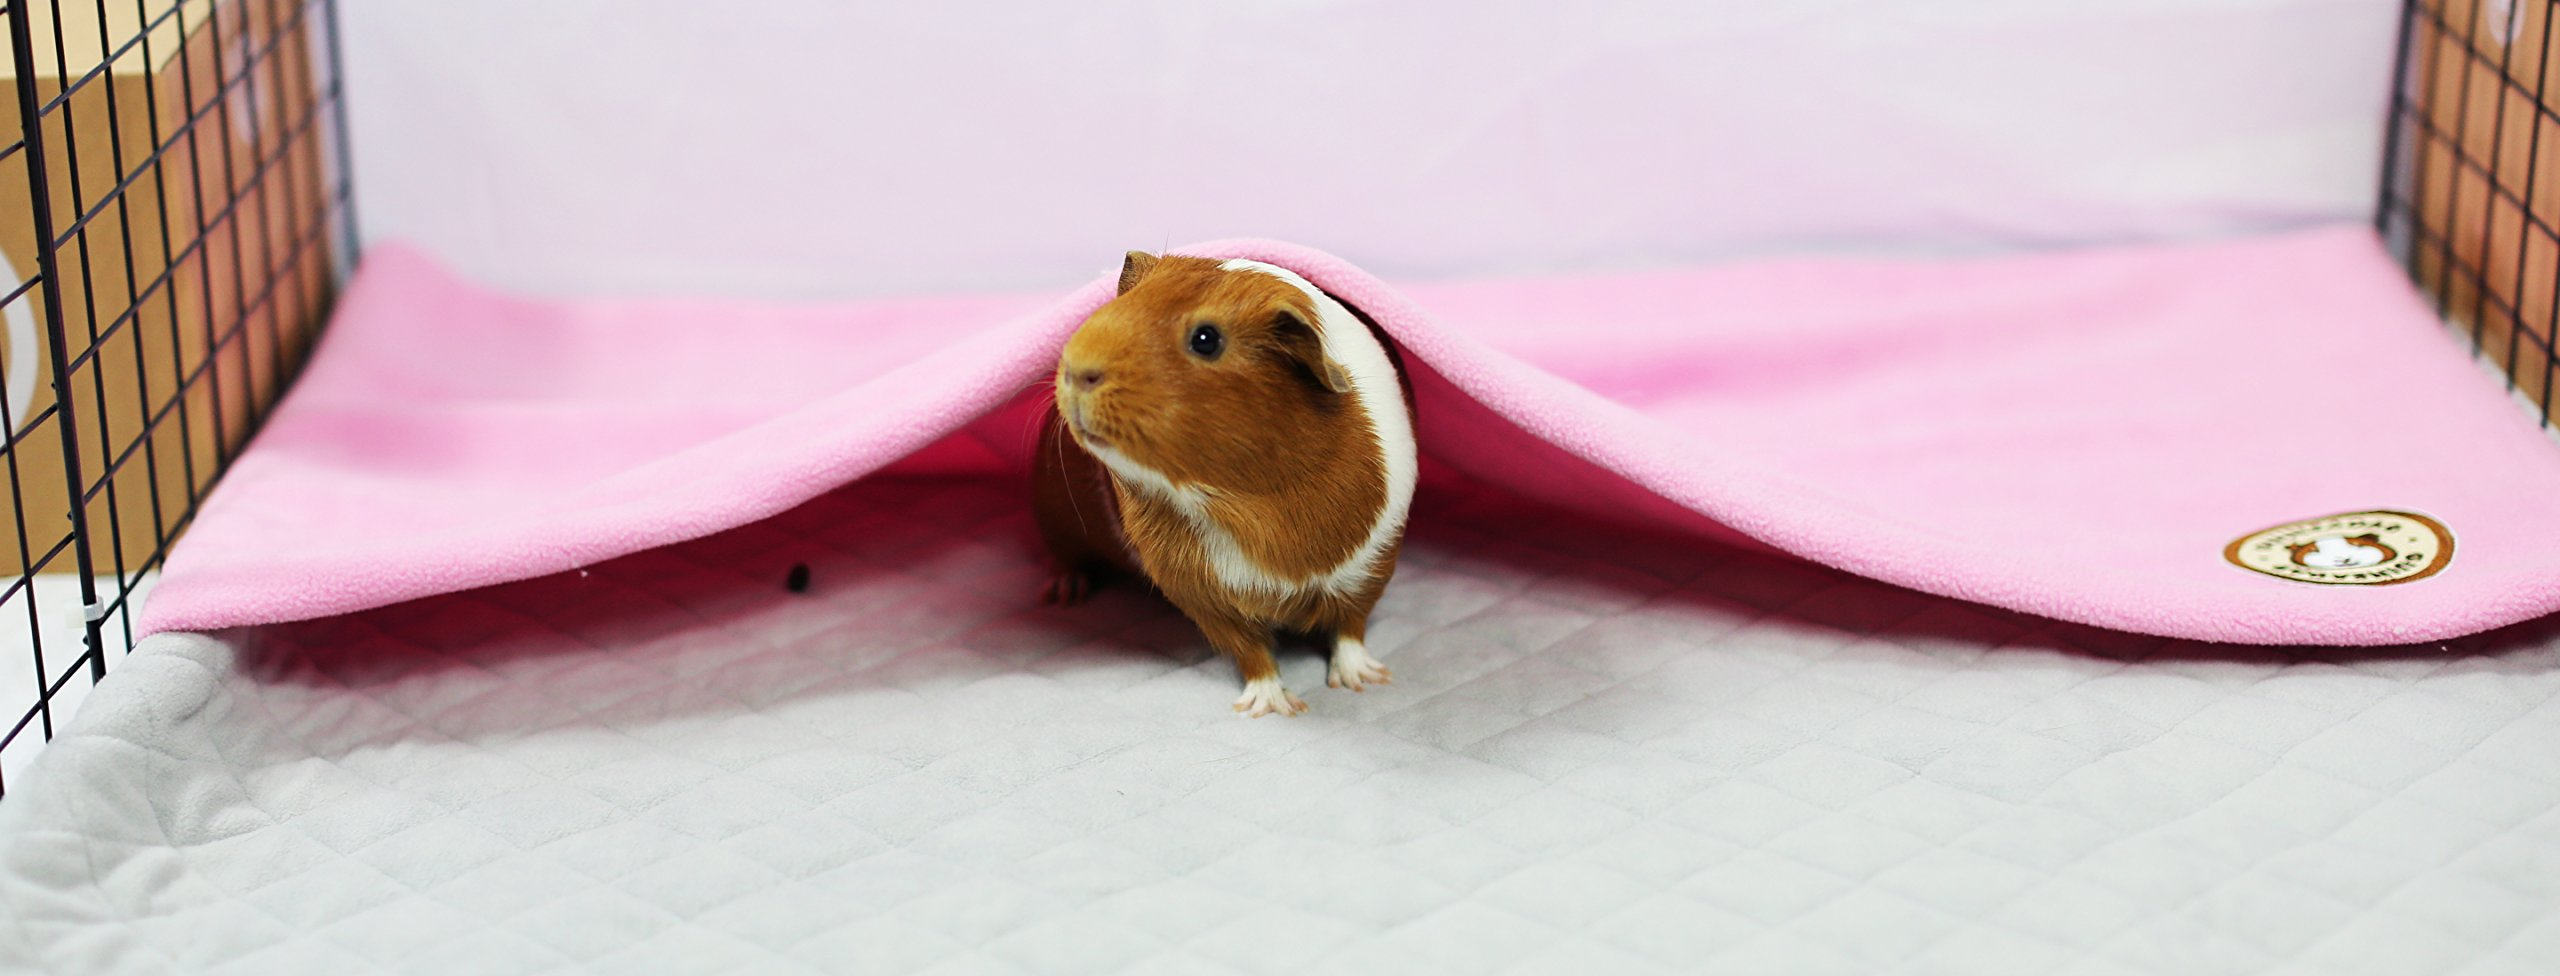 GuineaDad Fleece Liner 2.0 | Guinea Pig Fleece Cage Liners Bedding | Burrowing Pocket Sleeve | Extra Absorbent Antibacterial Bamboo | Waterproof | Available Various Cage Sizes by GuineaDad (Image #2)